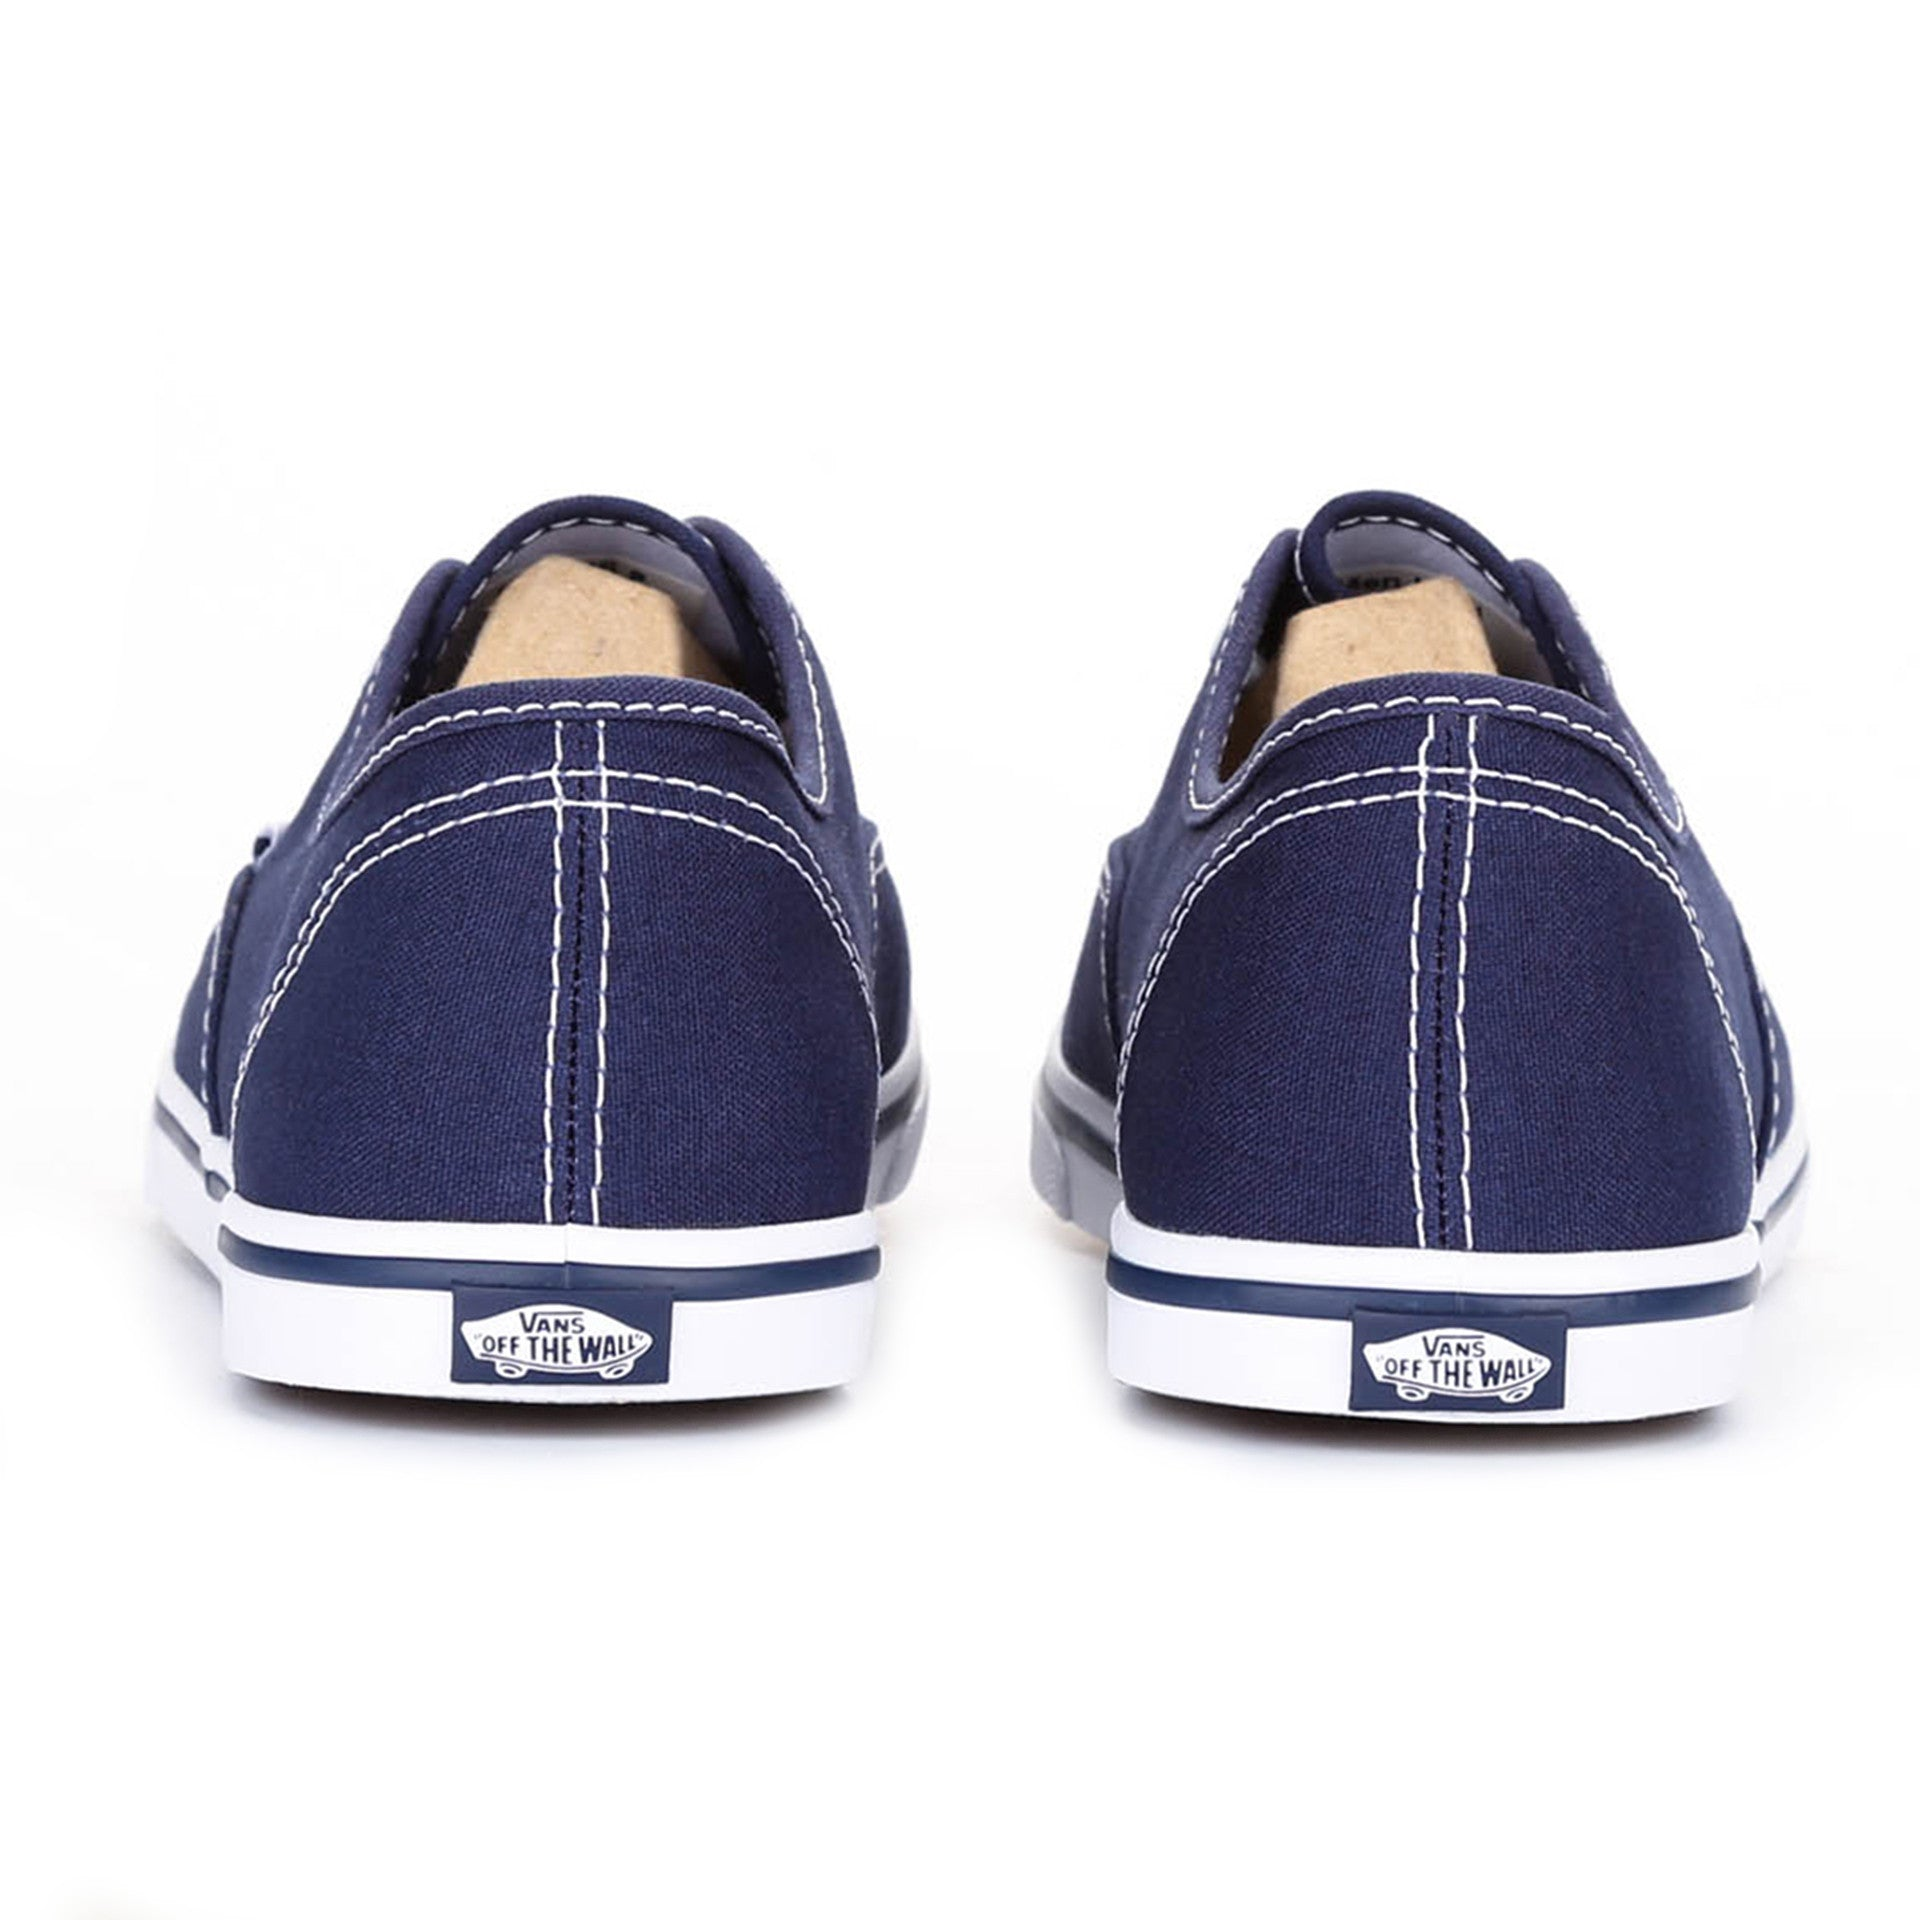 3e0d3e45a9 Vans Authentic Lo Pro - Navy - New Star